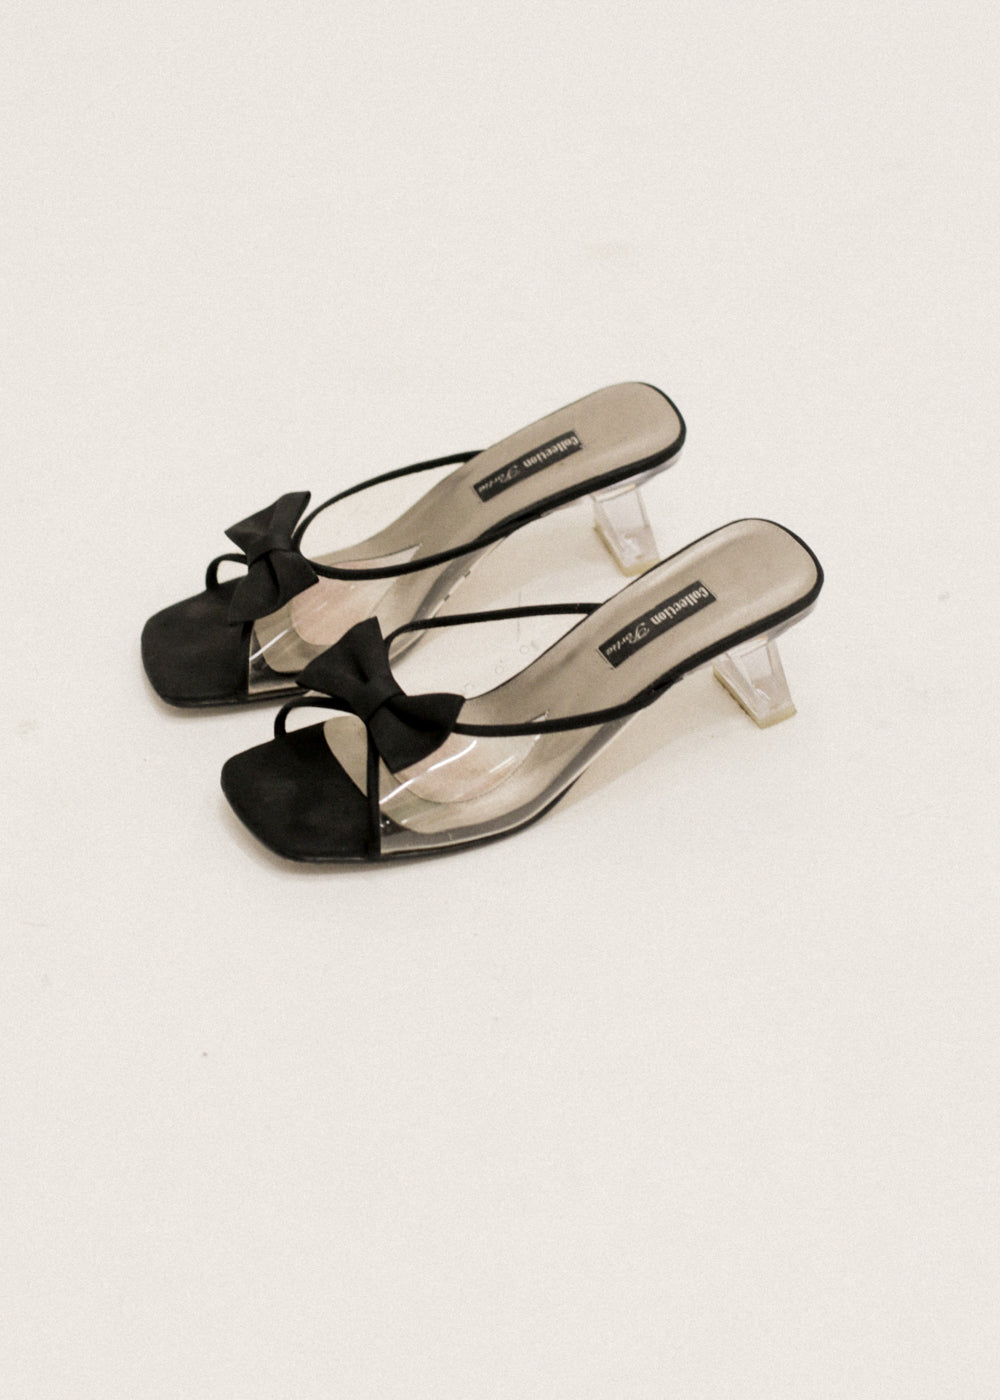 Vintage Clear Bow Heeled Mules